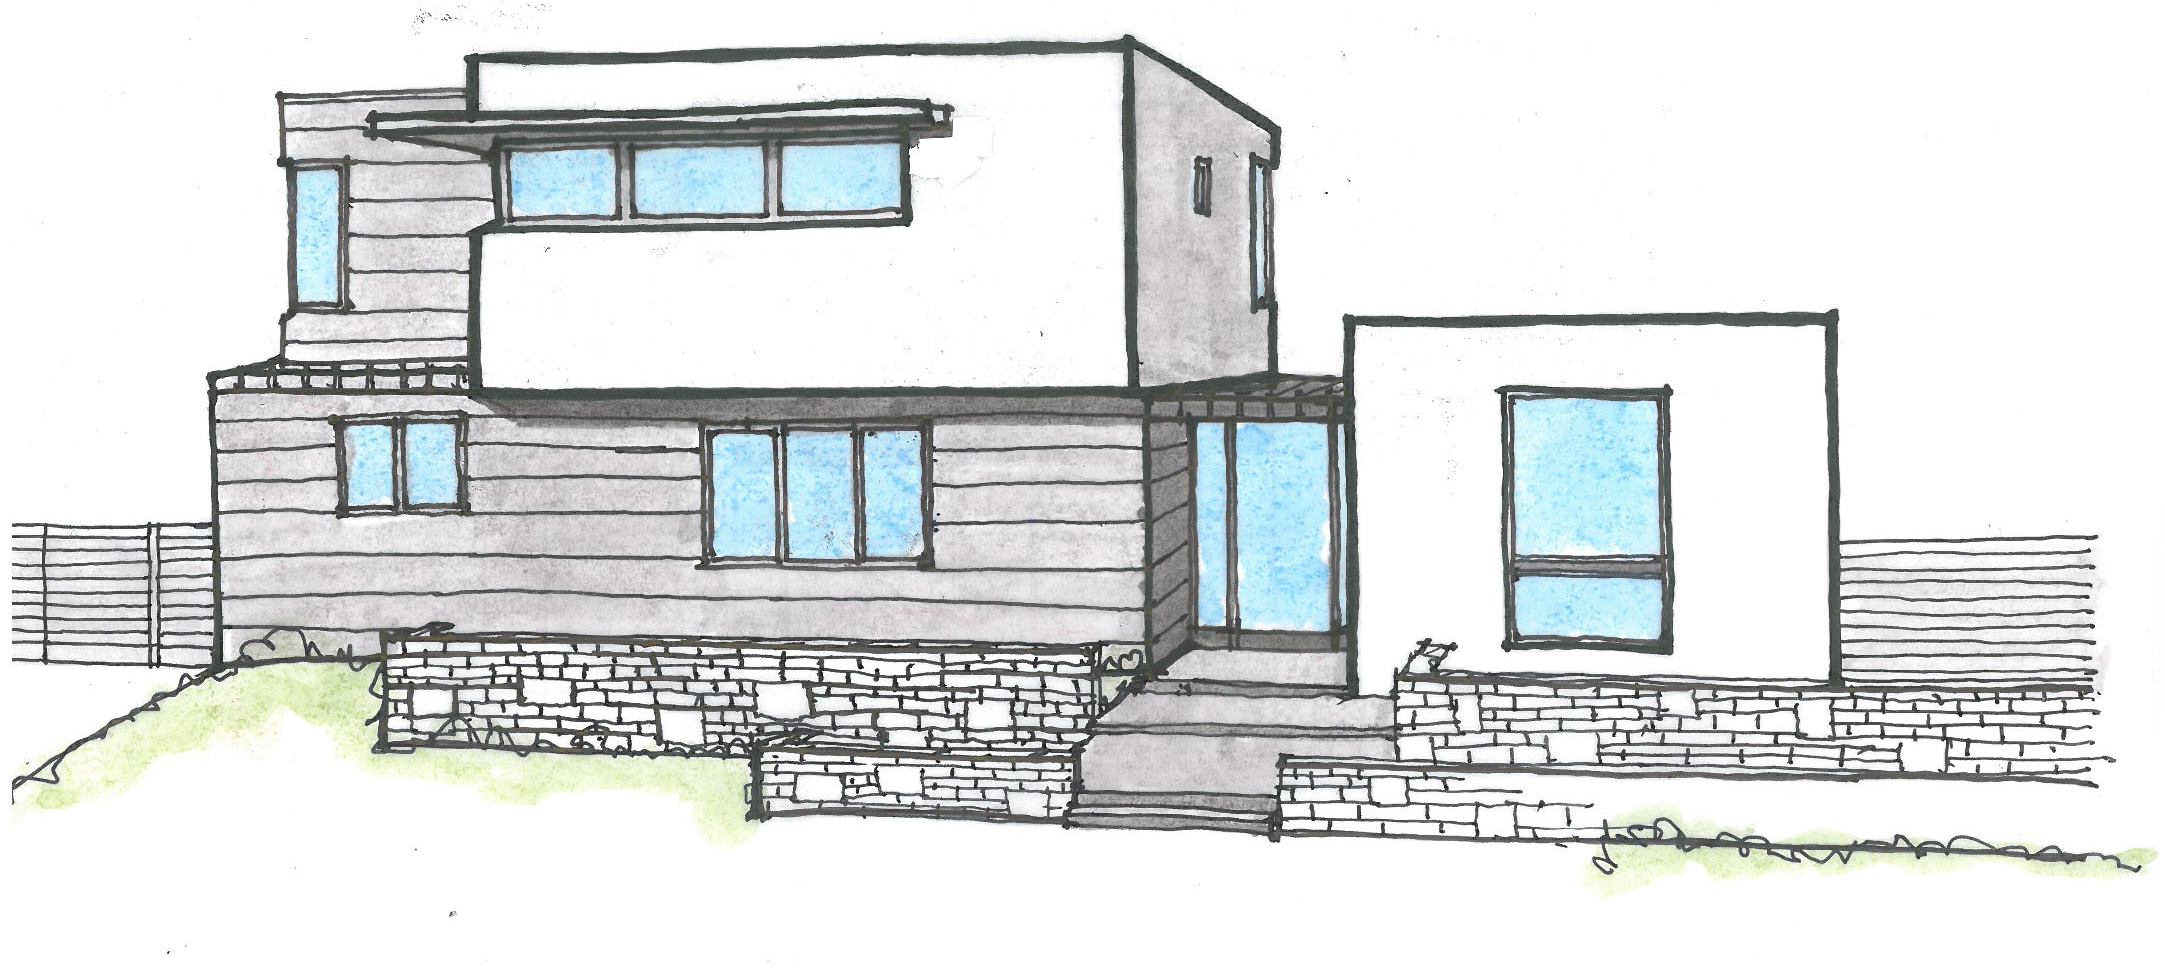 Surprising simple home drawing ideas simple design home for How to make a blueprint of a house